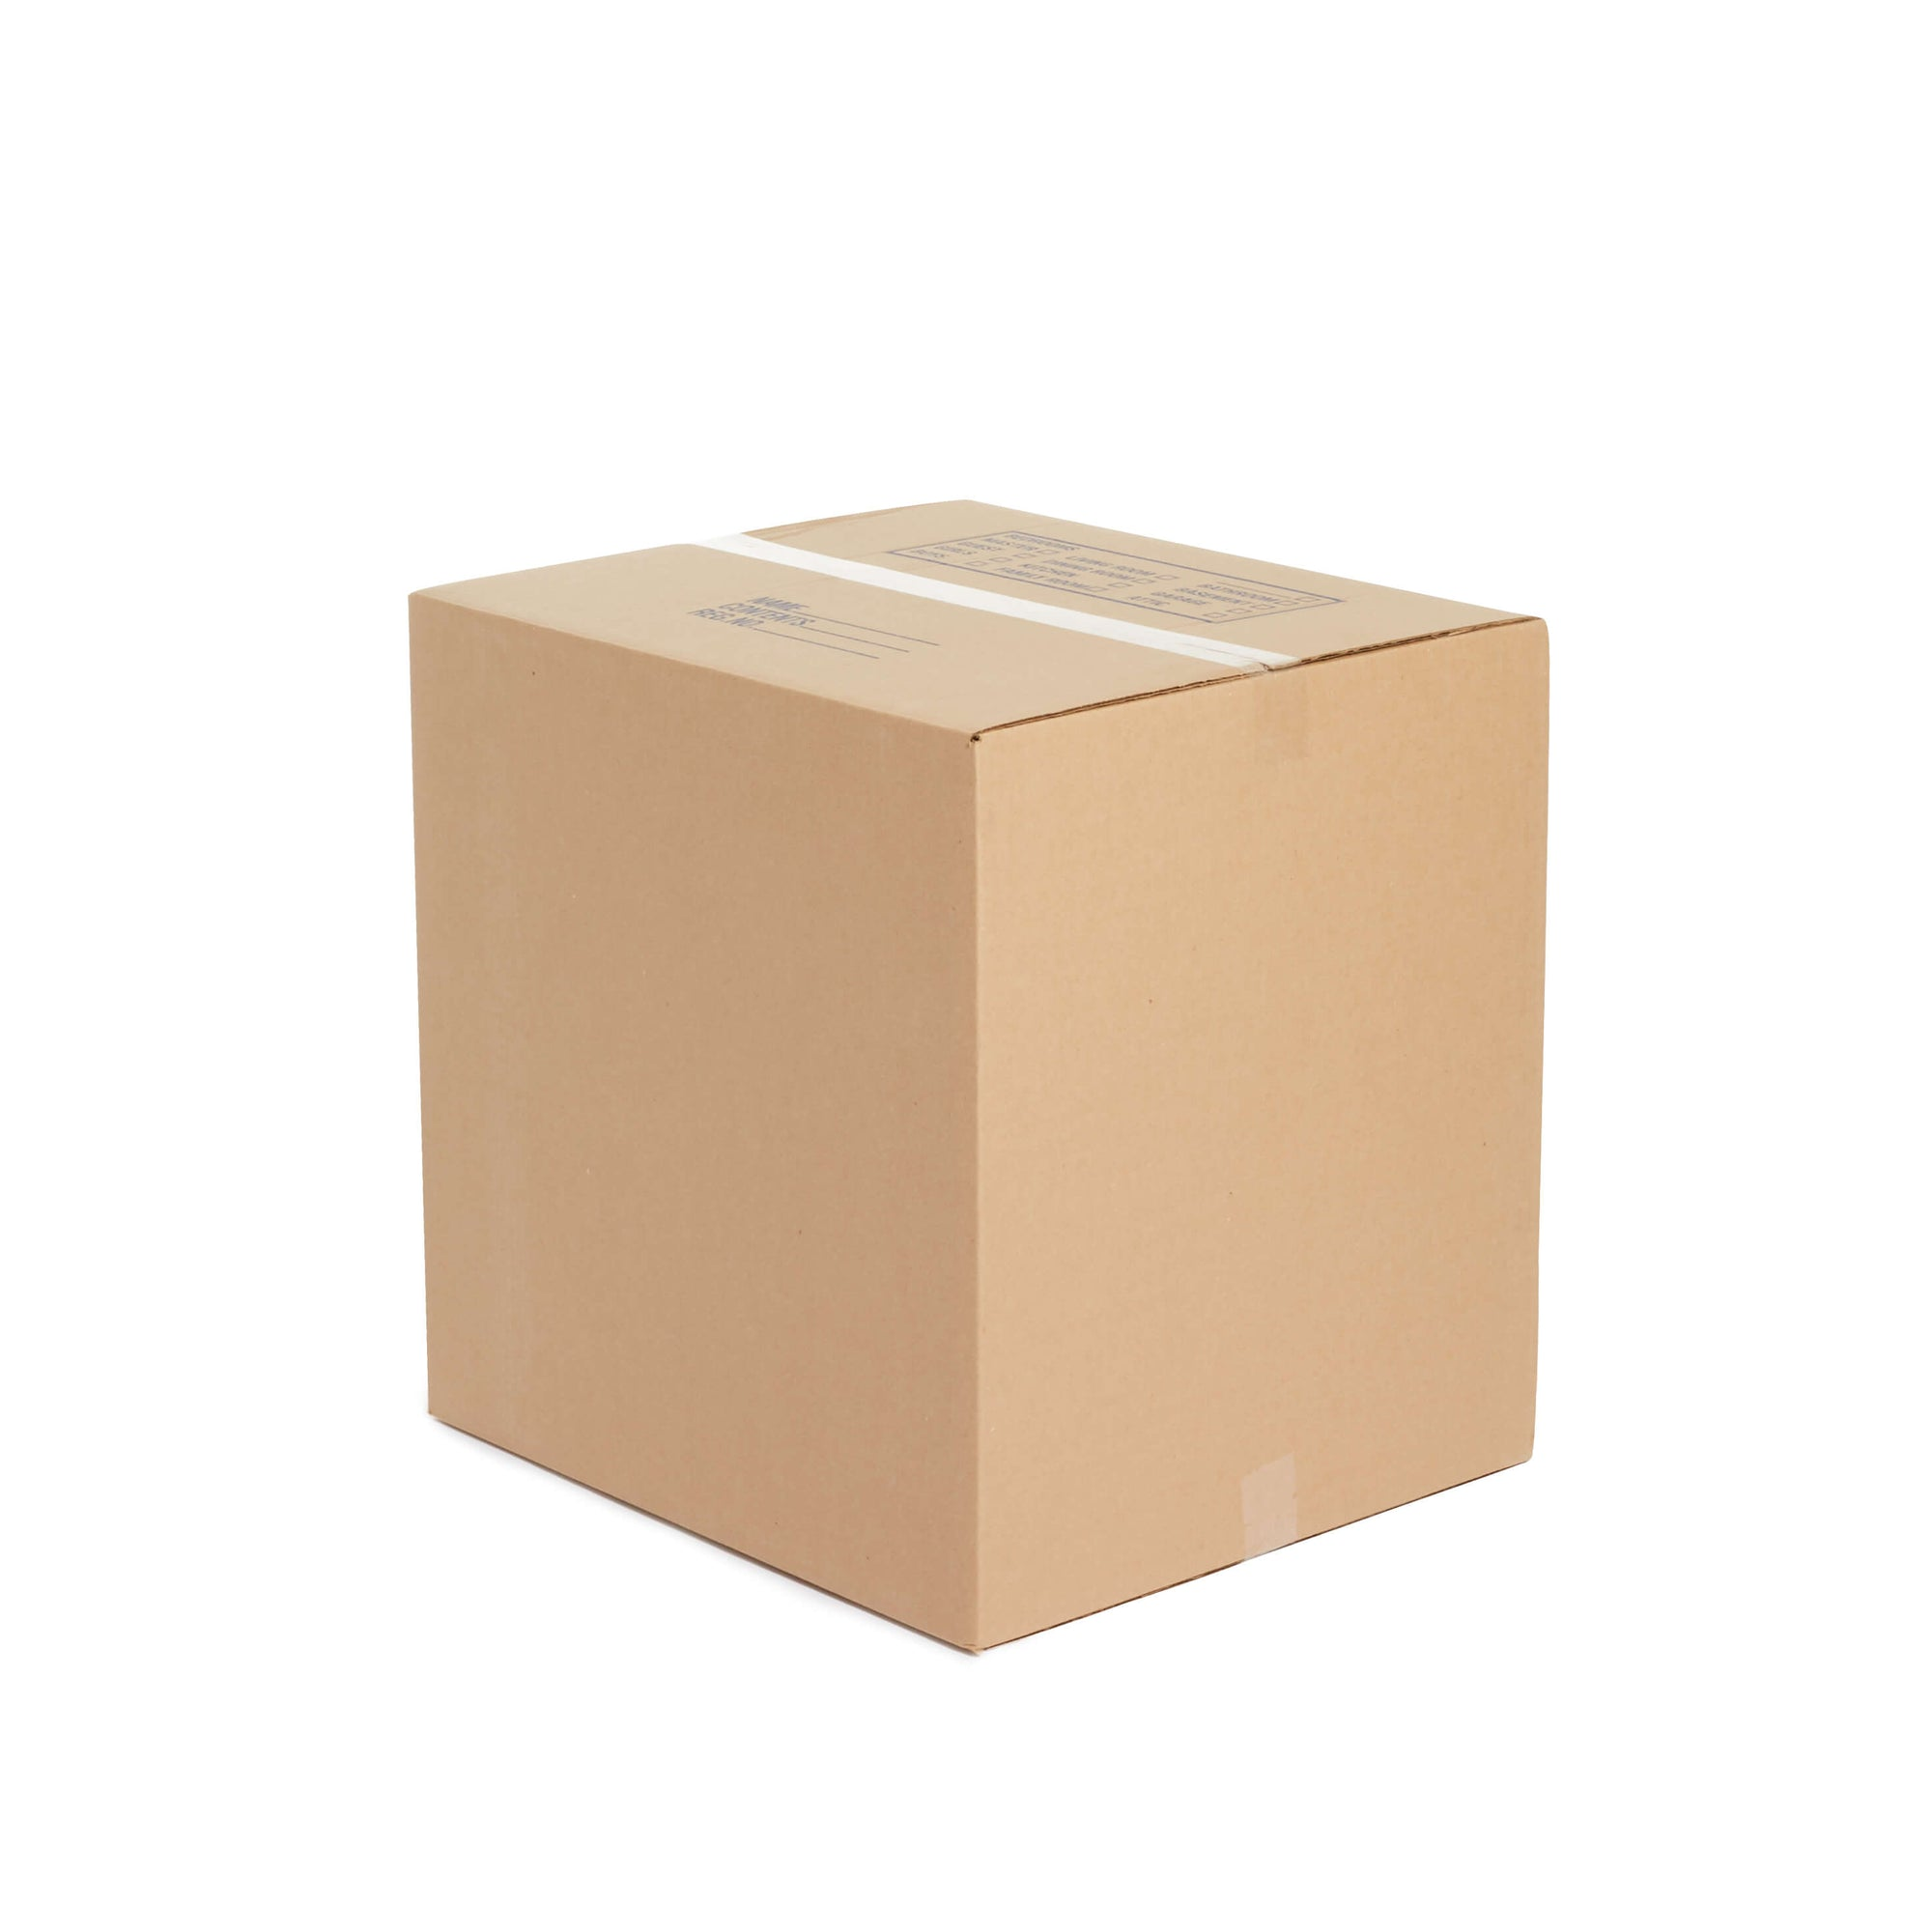 Extra Large Box - 24″ x 18″ x 24″Pack of 5